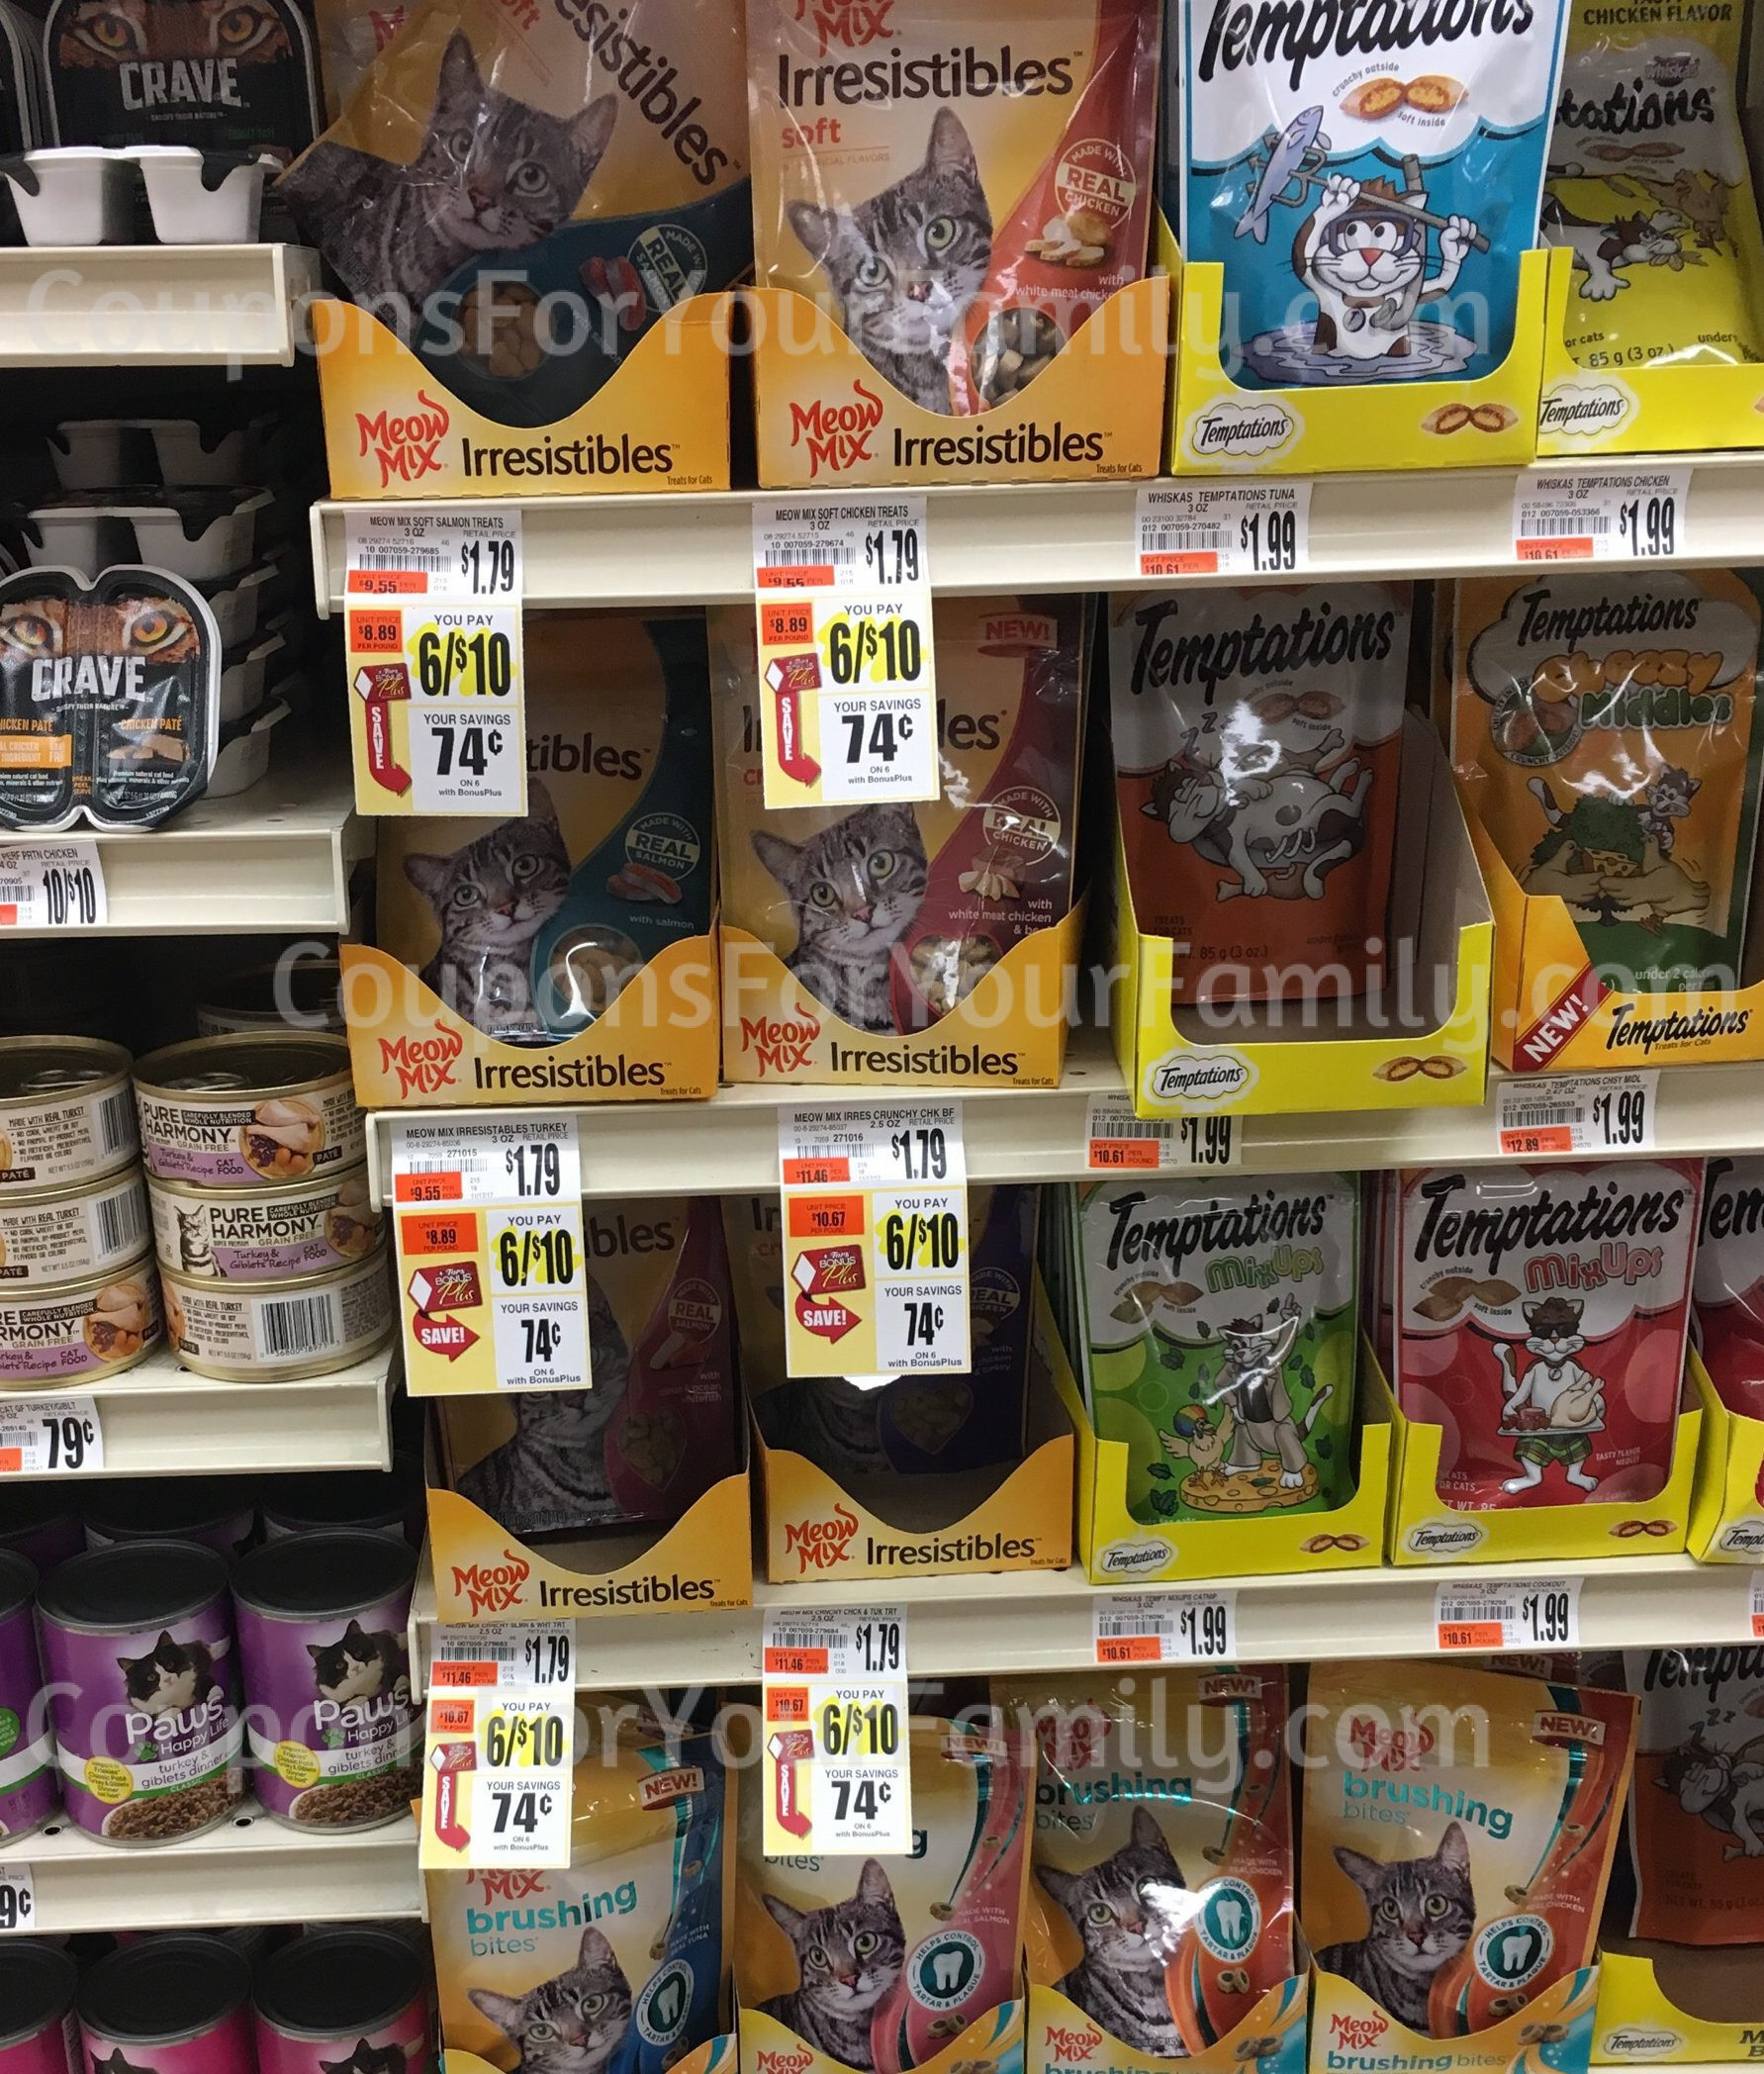 Tops Markets Meow Mix Irresistibles for only $.07 each!!!